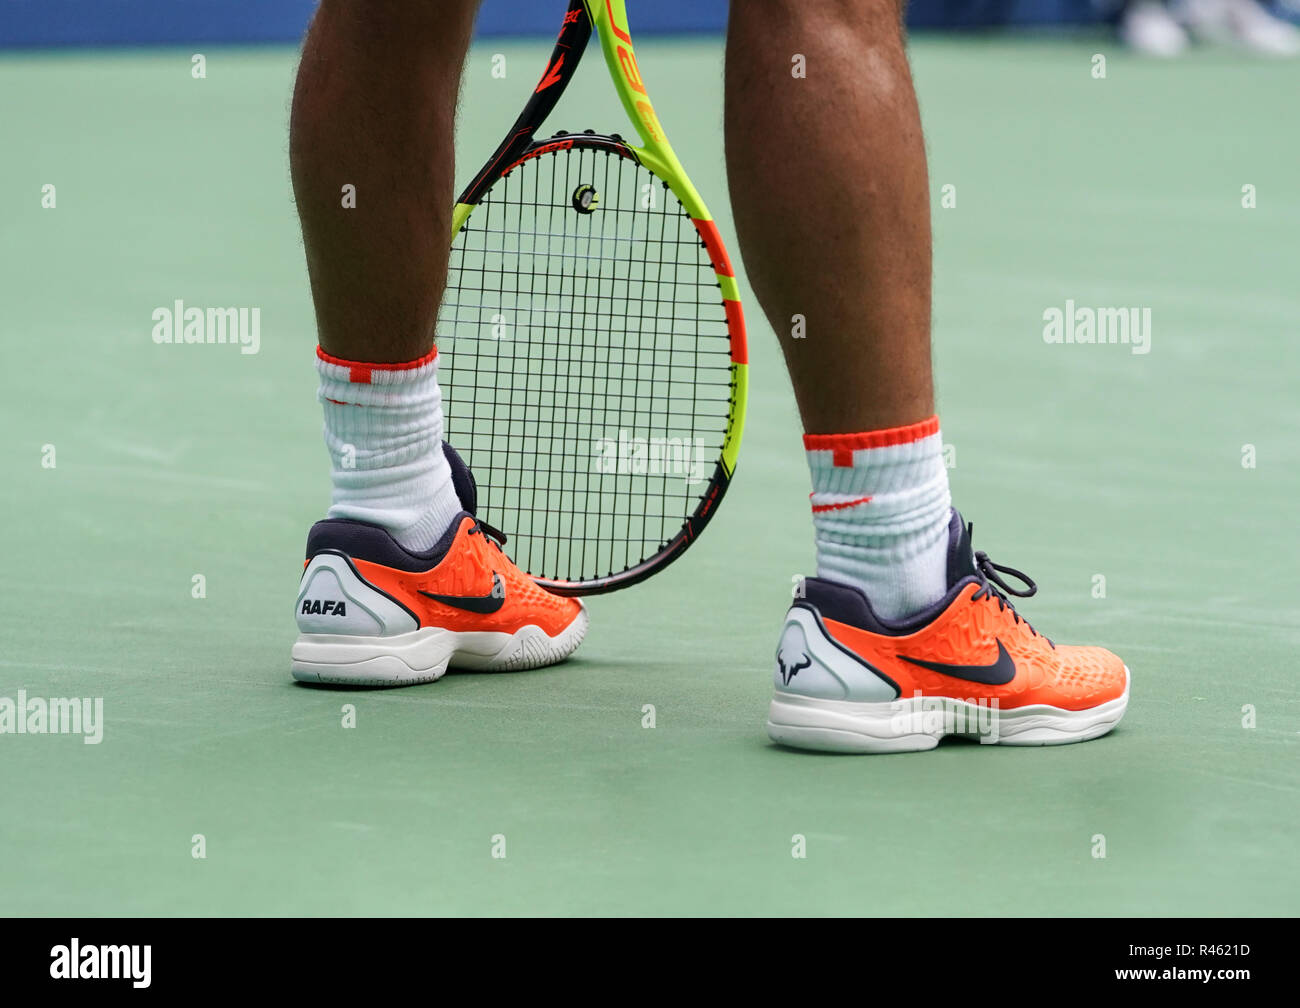 Rafael Nadal Nike High Resolution Stock Photography And Images Alamy